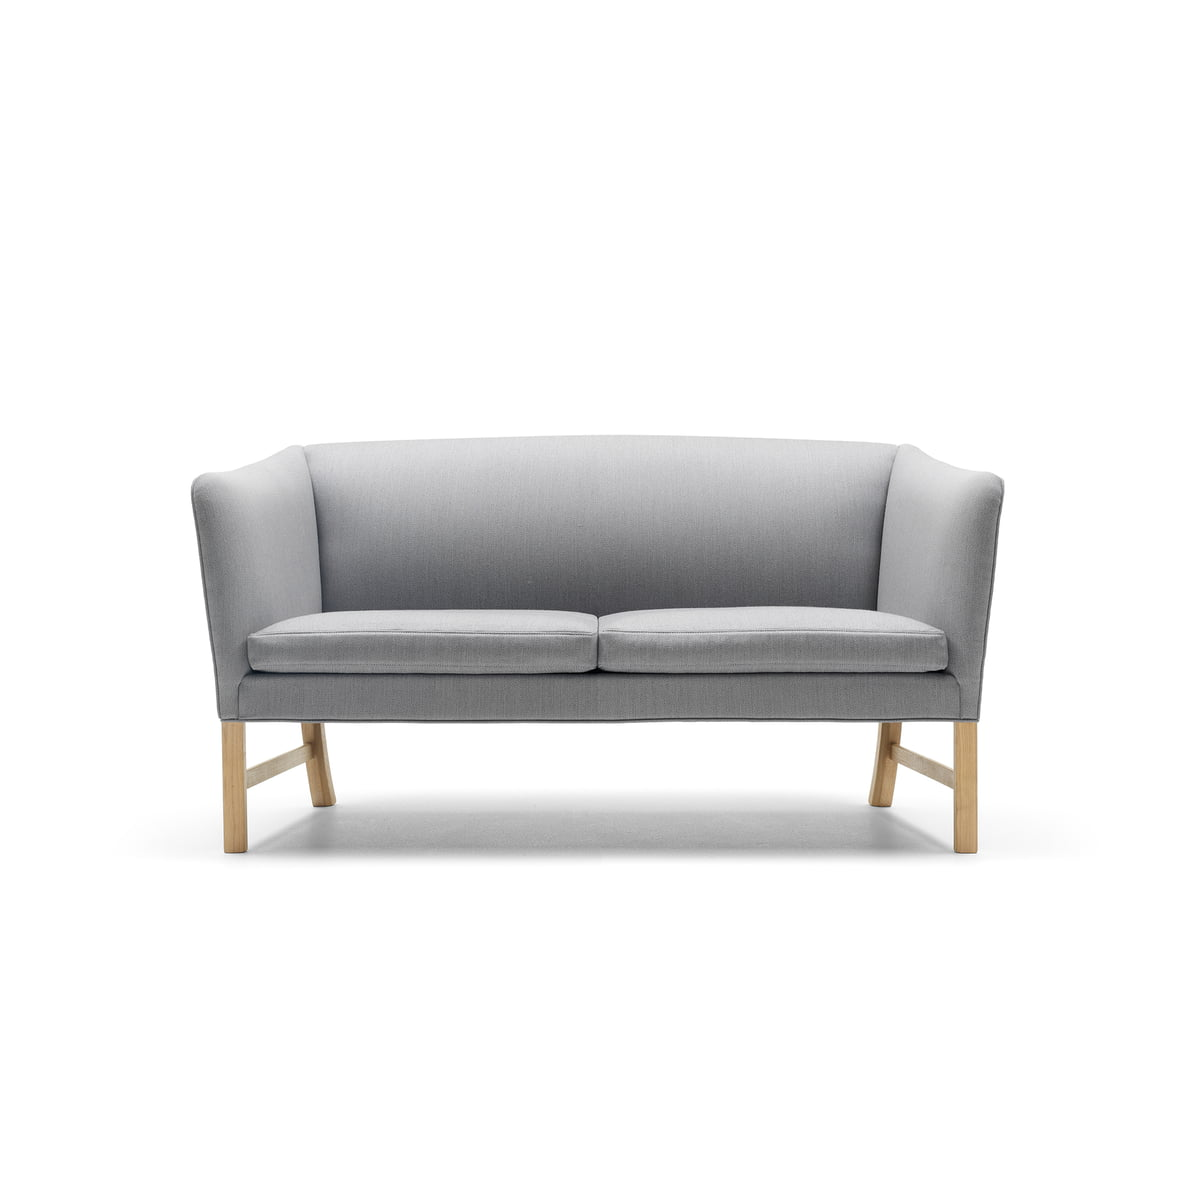 OW602 Sofa 2-seater by Carl Hansen in the shop